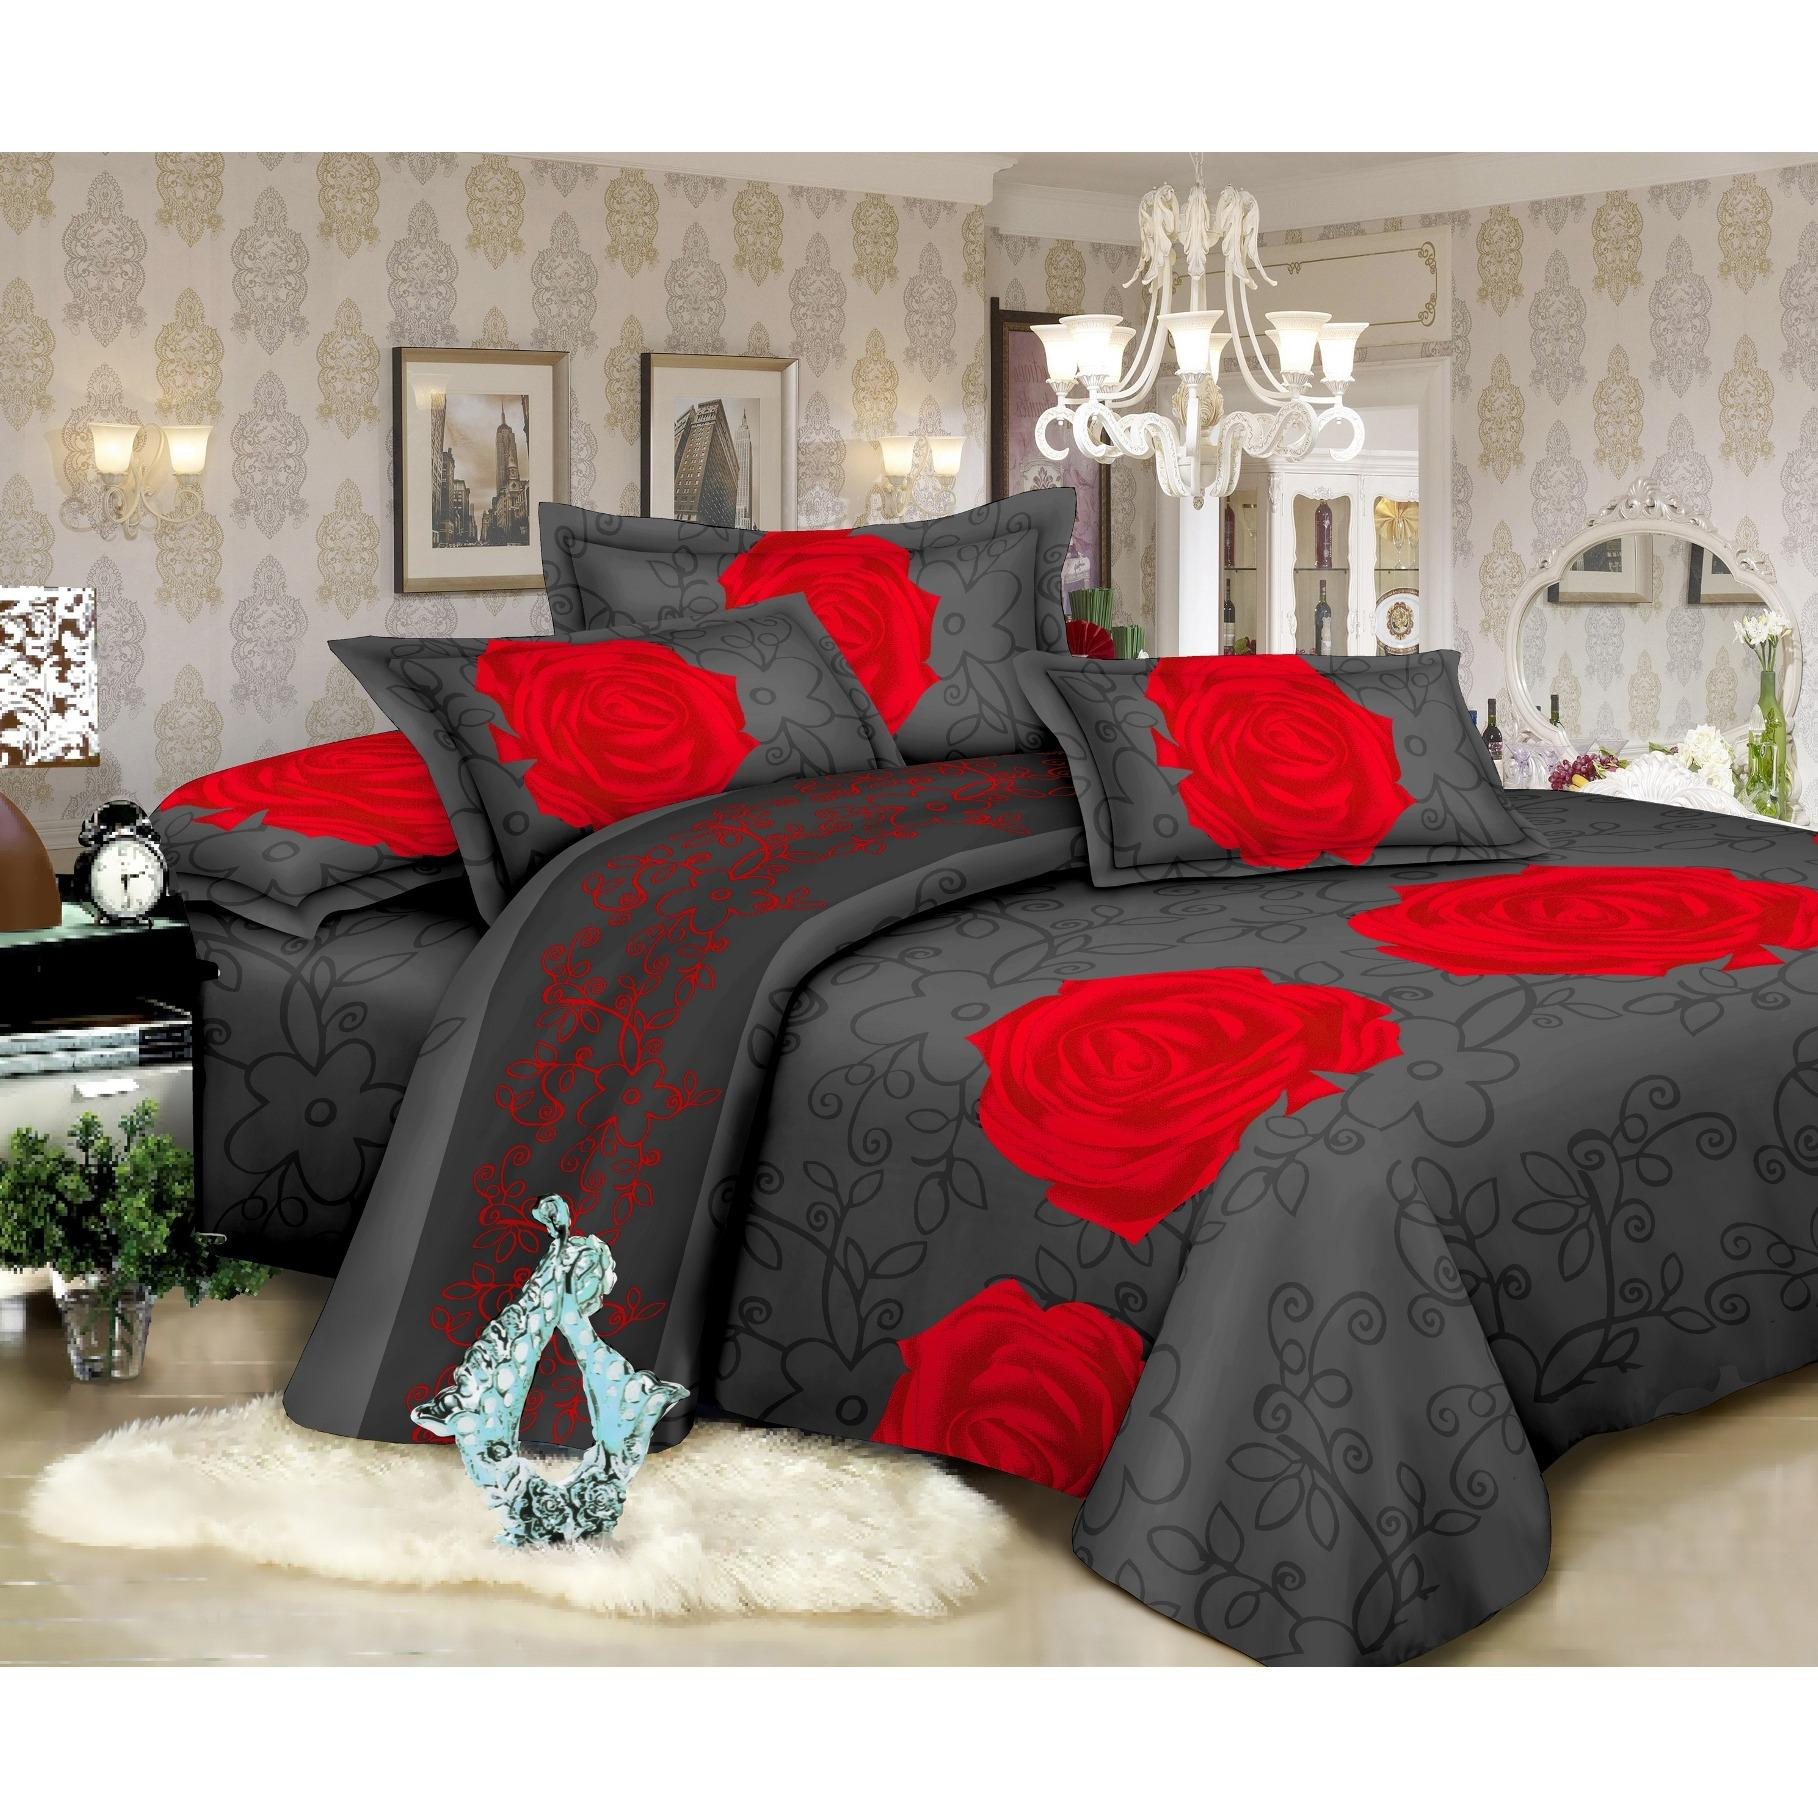 I Sleep Super Soft Comforter Set Quilt Bed Sheet Set 5Pcs Bundle Pack Red Flower For Sale Online